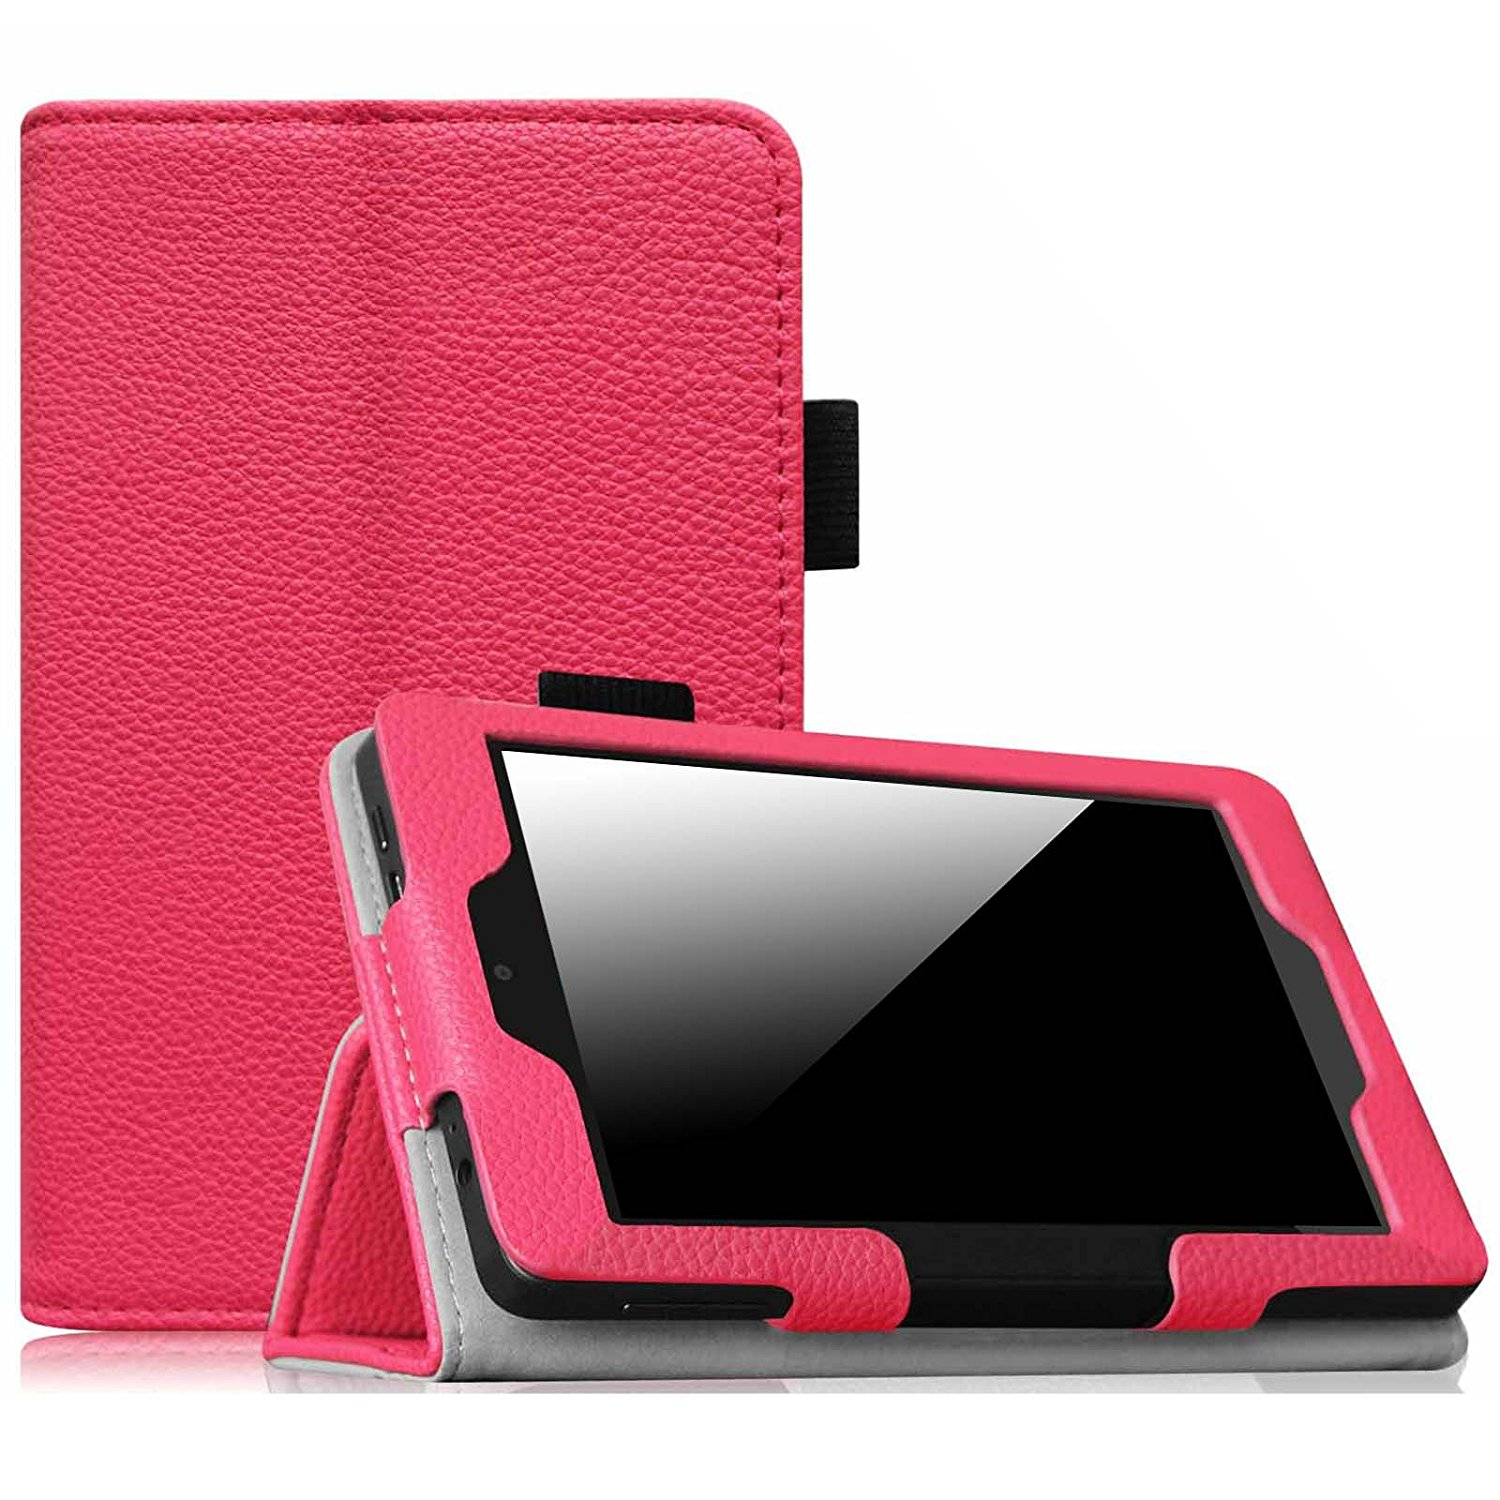 Fintie Kindle Fire HD 6 Tablet (2014 Oct Release) Folio Case - PU Leather Stand Cover with Sleep/Wake, Magenta